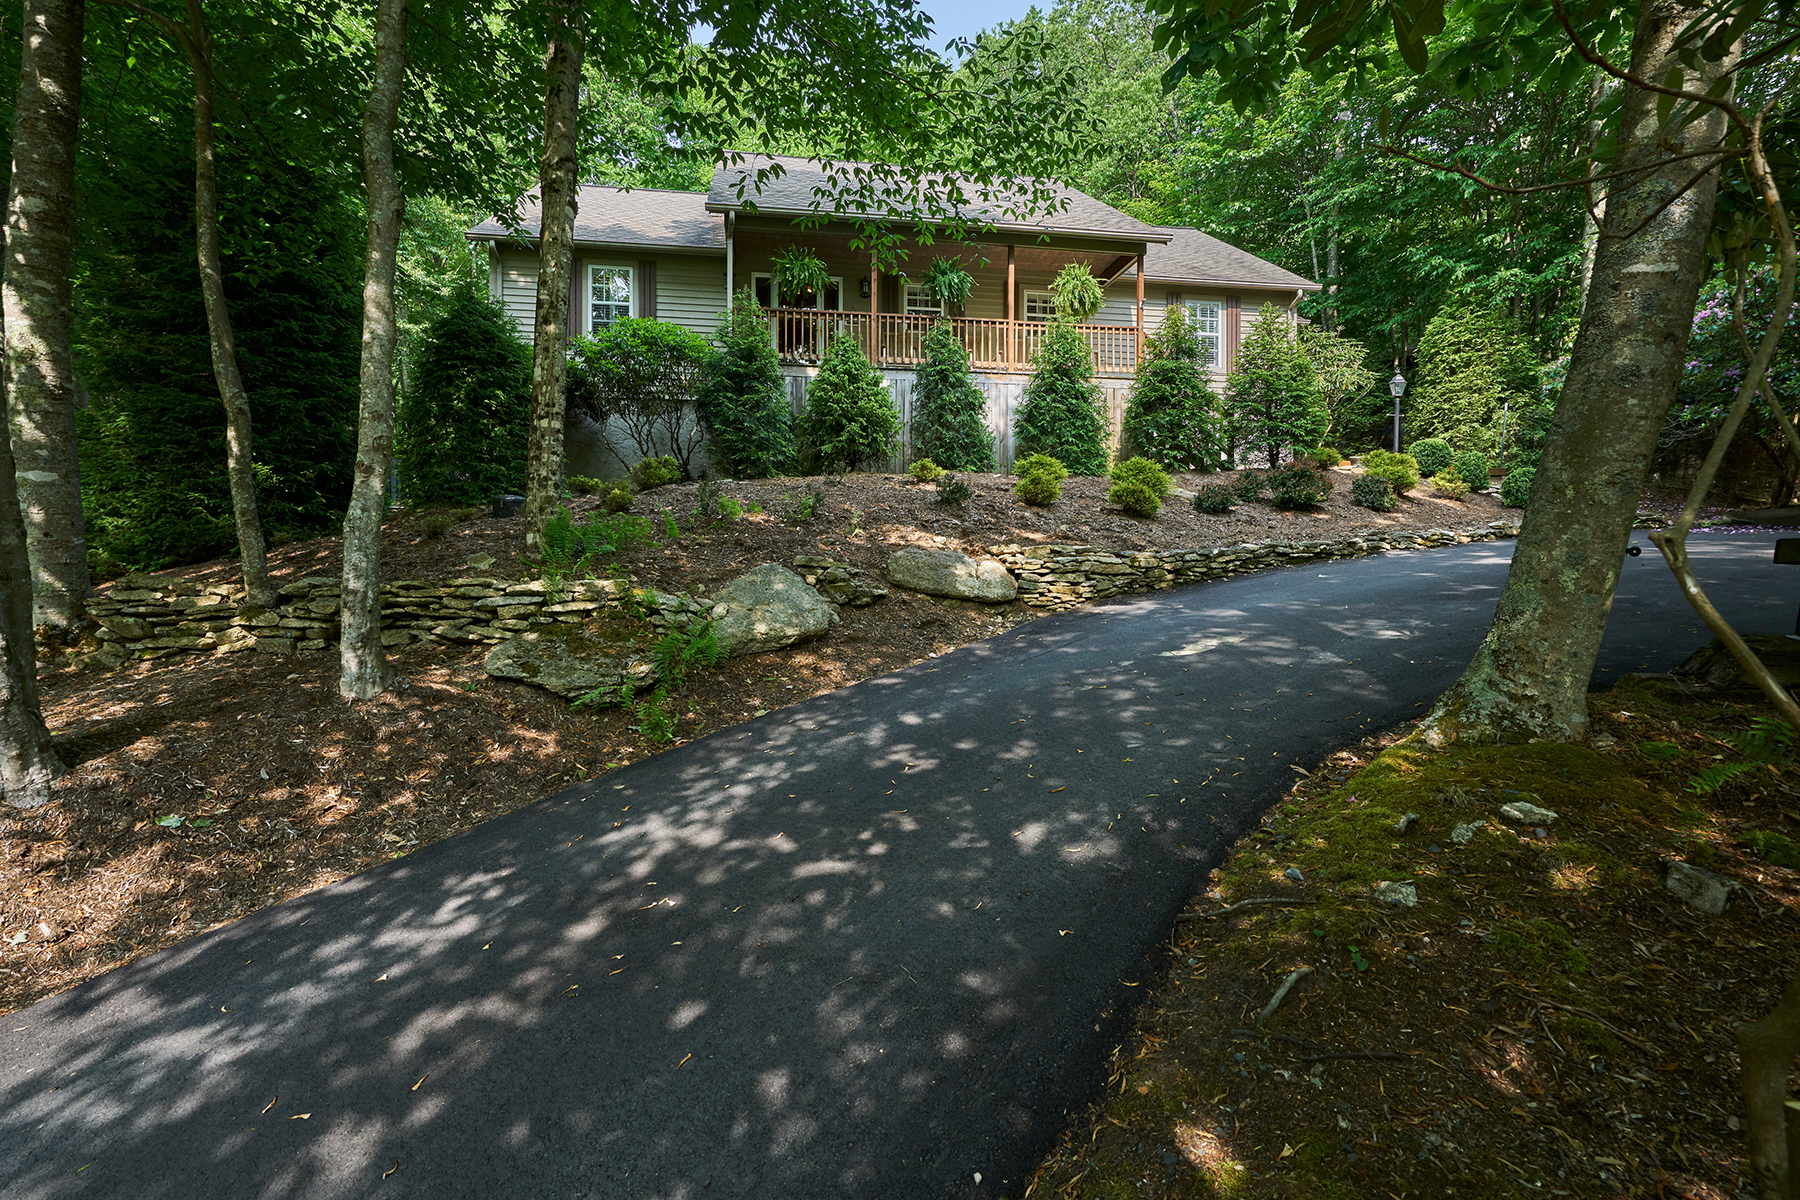 Single Family Homes for Active at CHARTER HILLS - BLOWING ROCK 178 Hornbeam Rd Beech Mountain, North Carolina 28604 United States